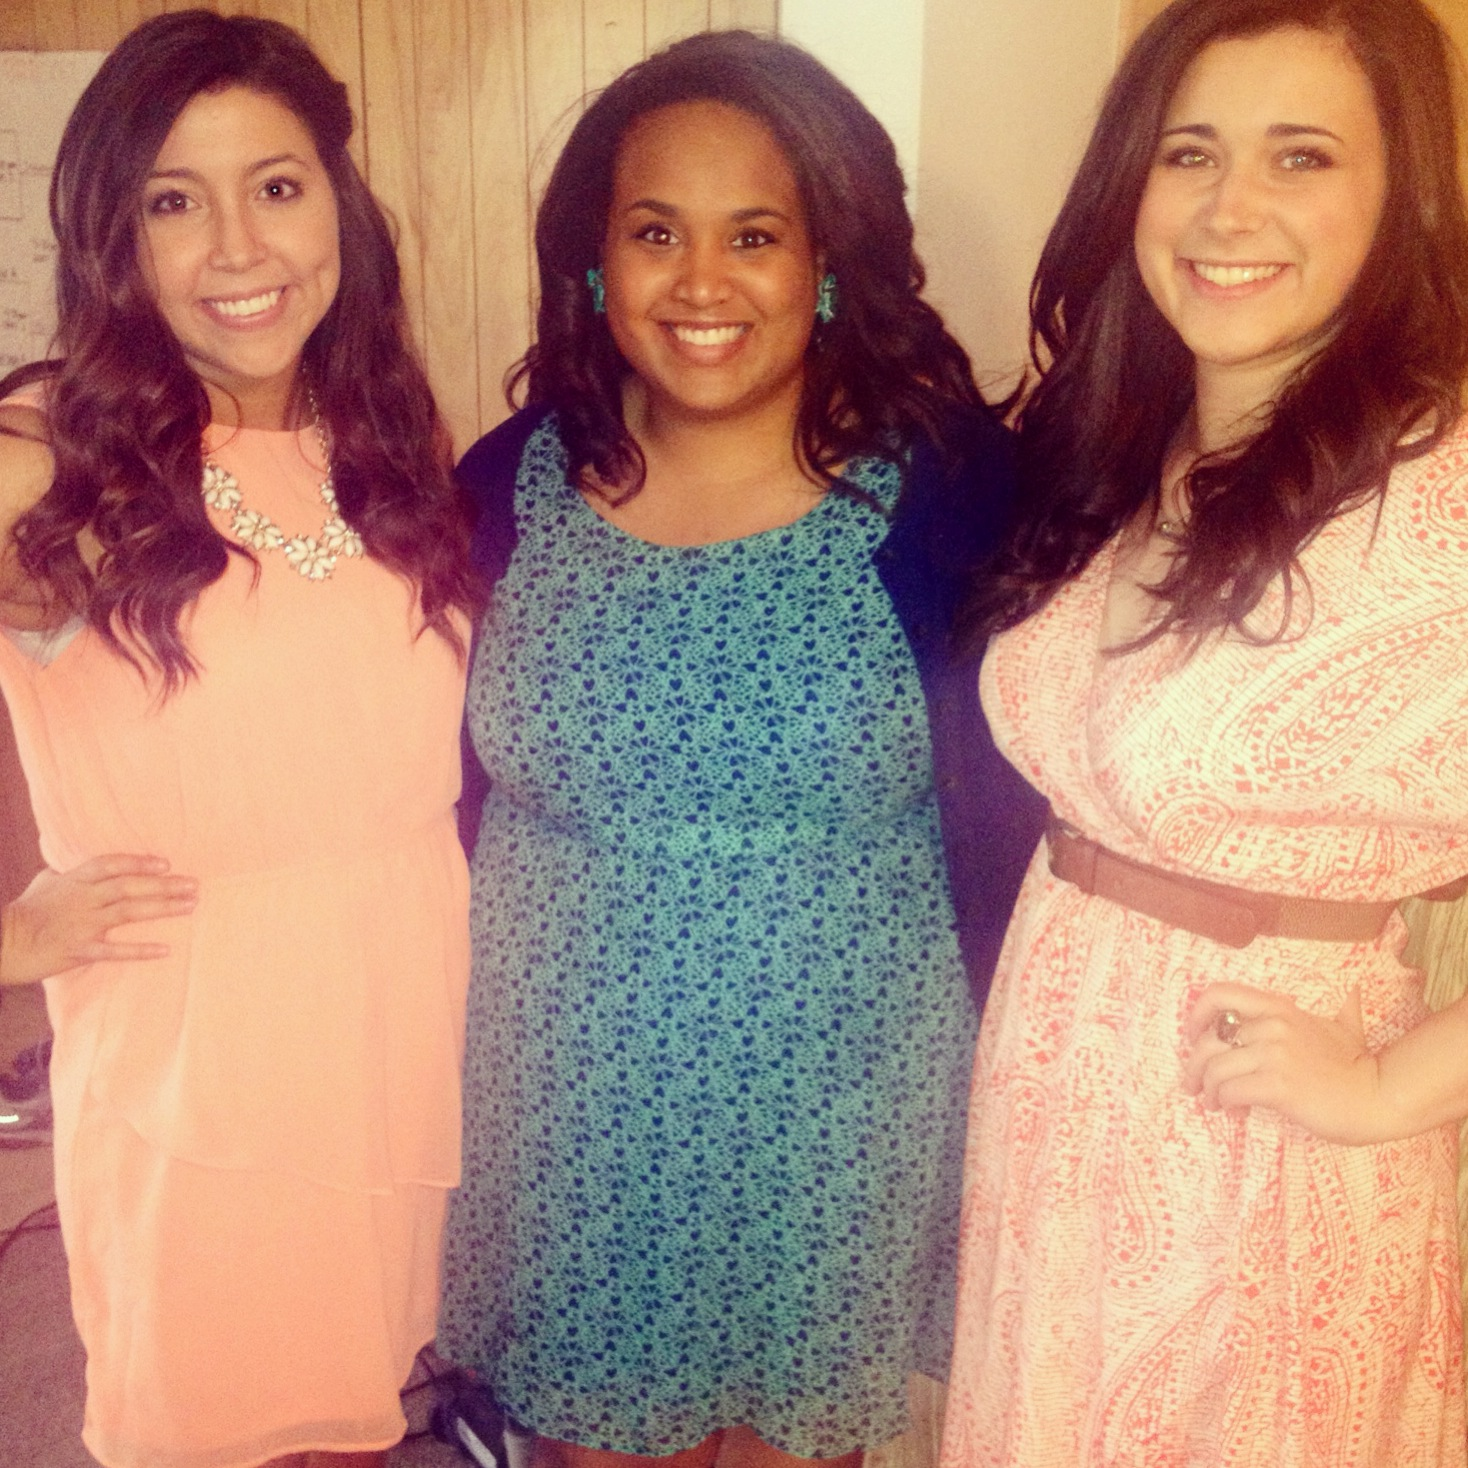 Journalism awards ceremony with two of my best gals, Taylor and Catherine.